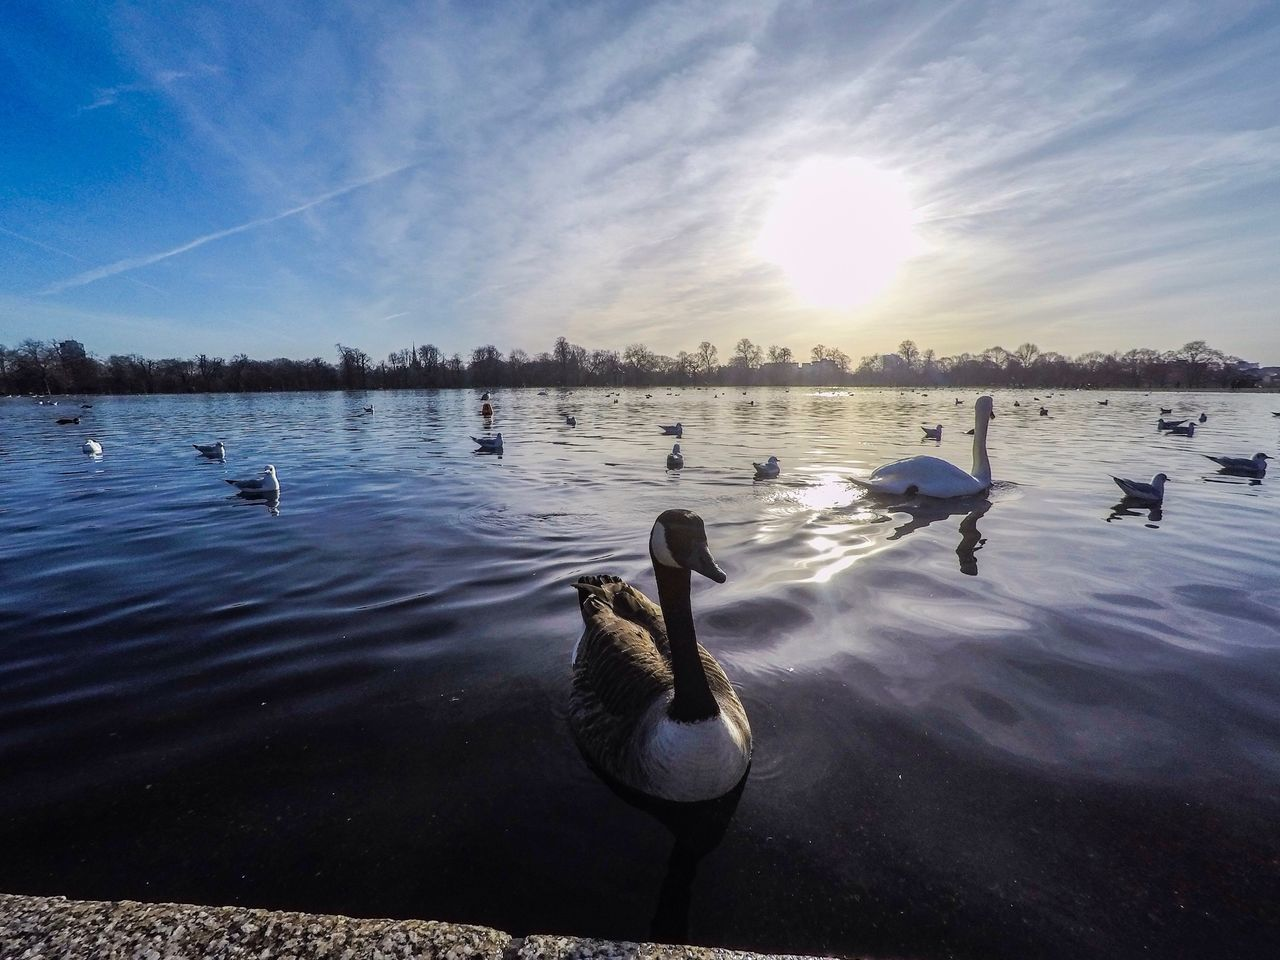 Kensington Park Goprooftheday Bird Animal Themes Animals In The Wild Water Lake Sunlight Sky Nature Animal Wildlife Duck Day Beauty In Nature No People GoPrography Photooftheday